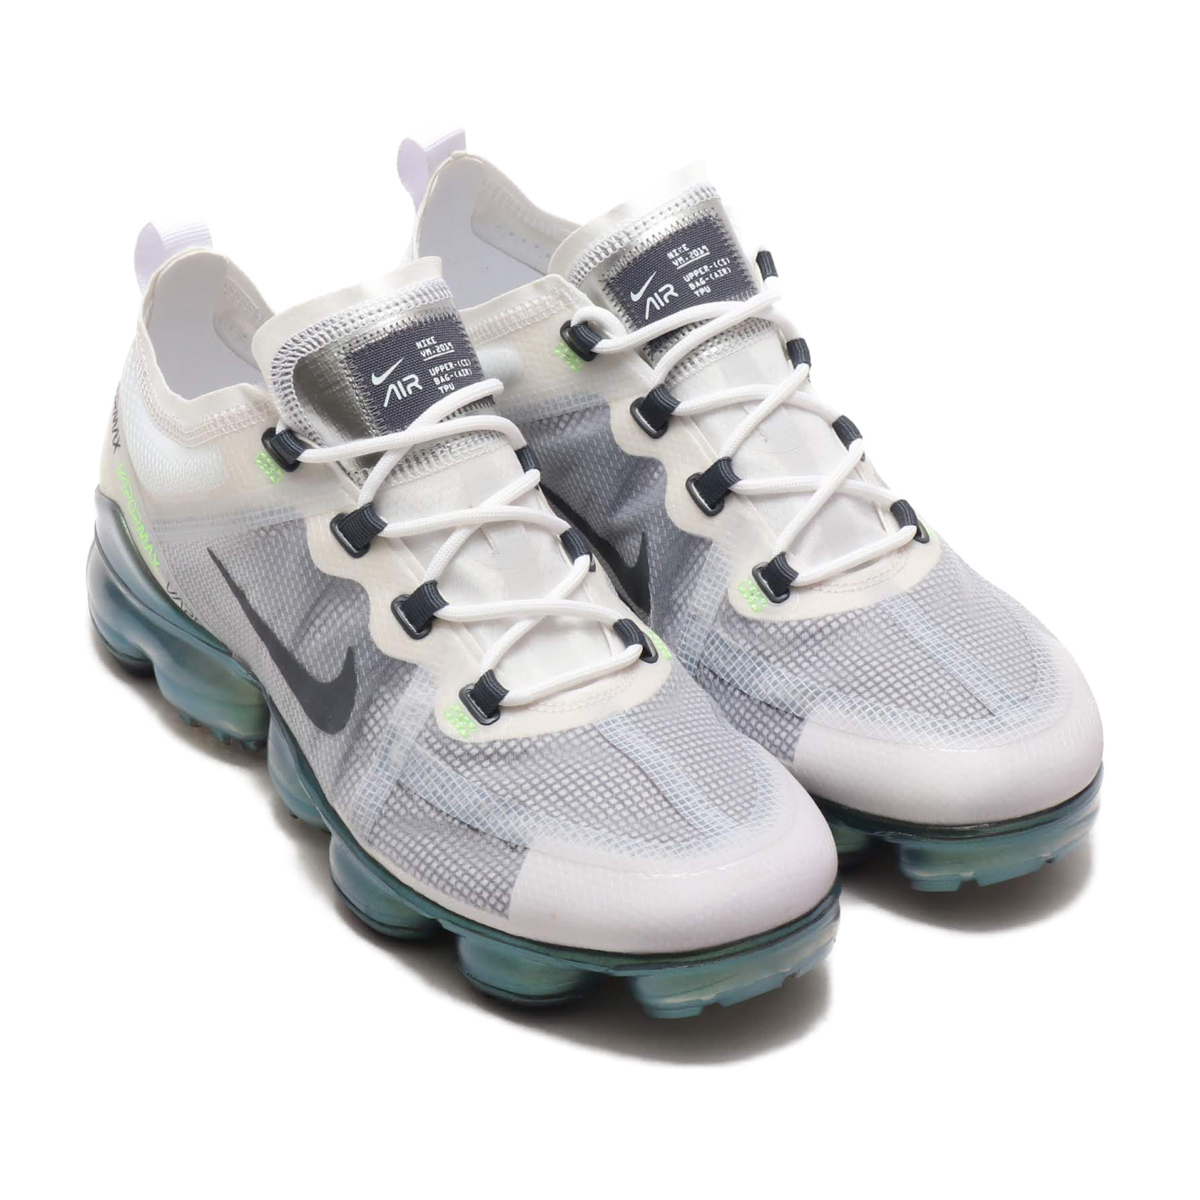 936a7a7cd02 The Nike air vapor max 2019 running shoes support a run structurally.  Arranged lightweight and flexible クッショニング for a sole most Air Max history